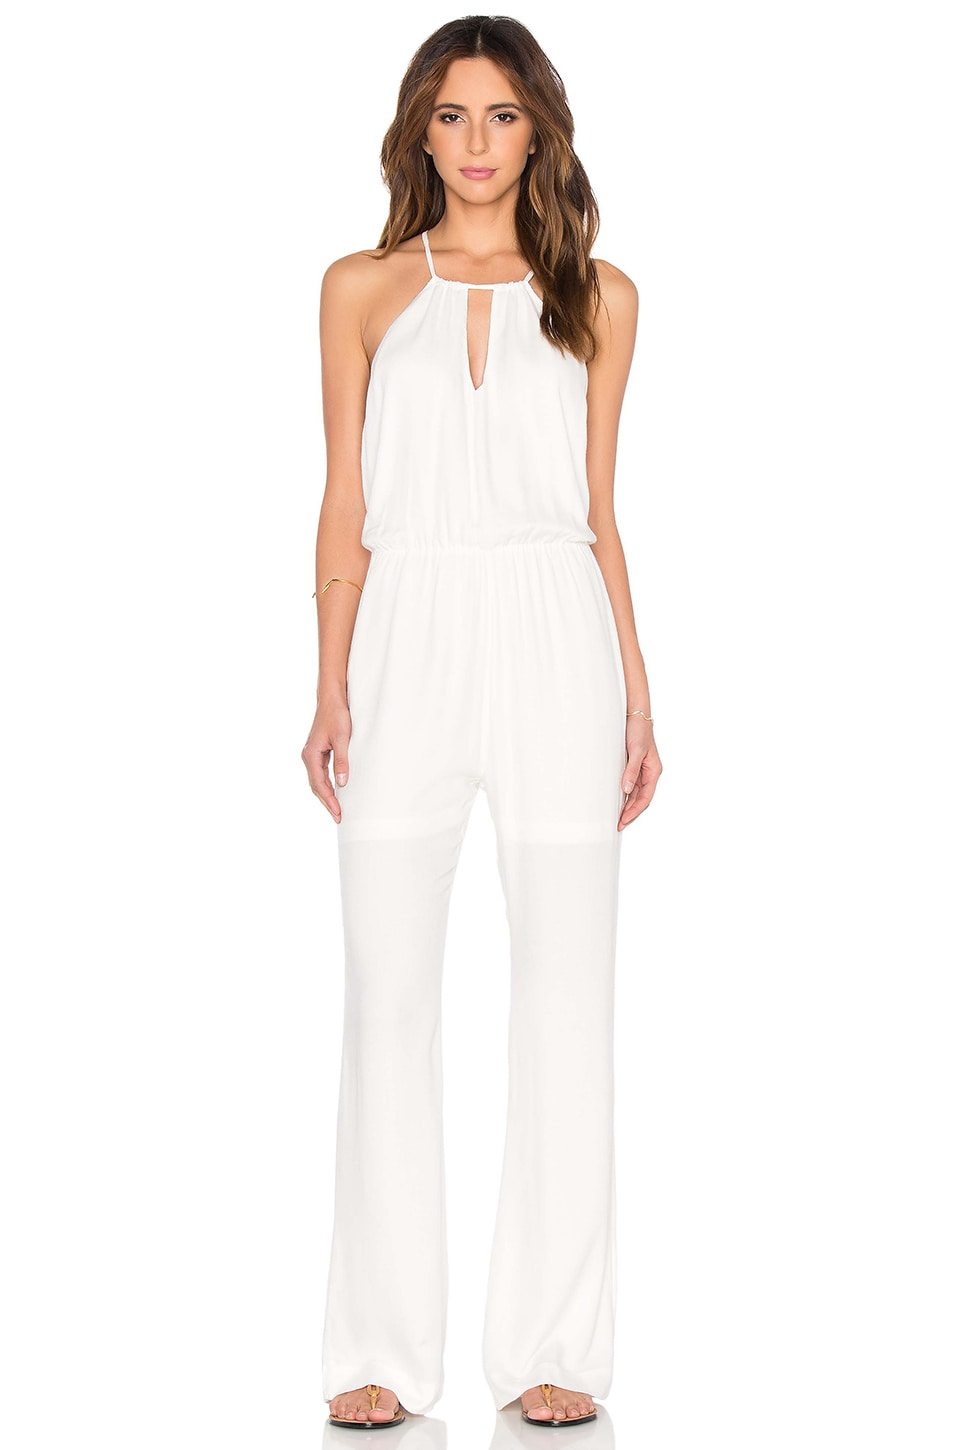 Macacao Jumpsuit by OH, BOY!